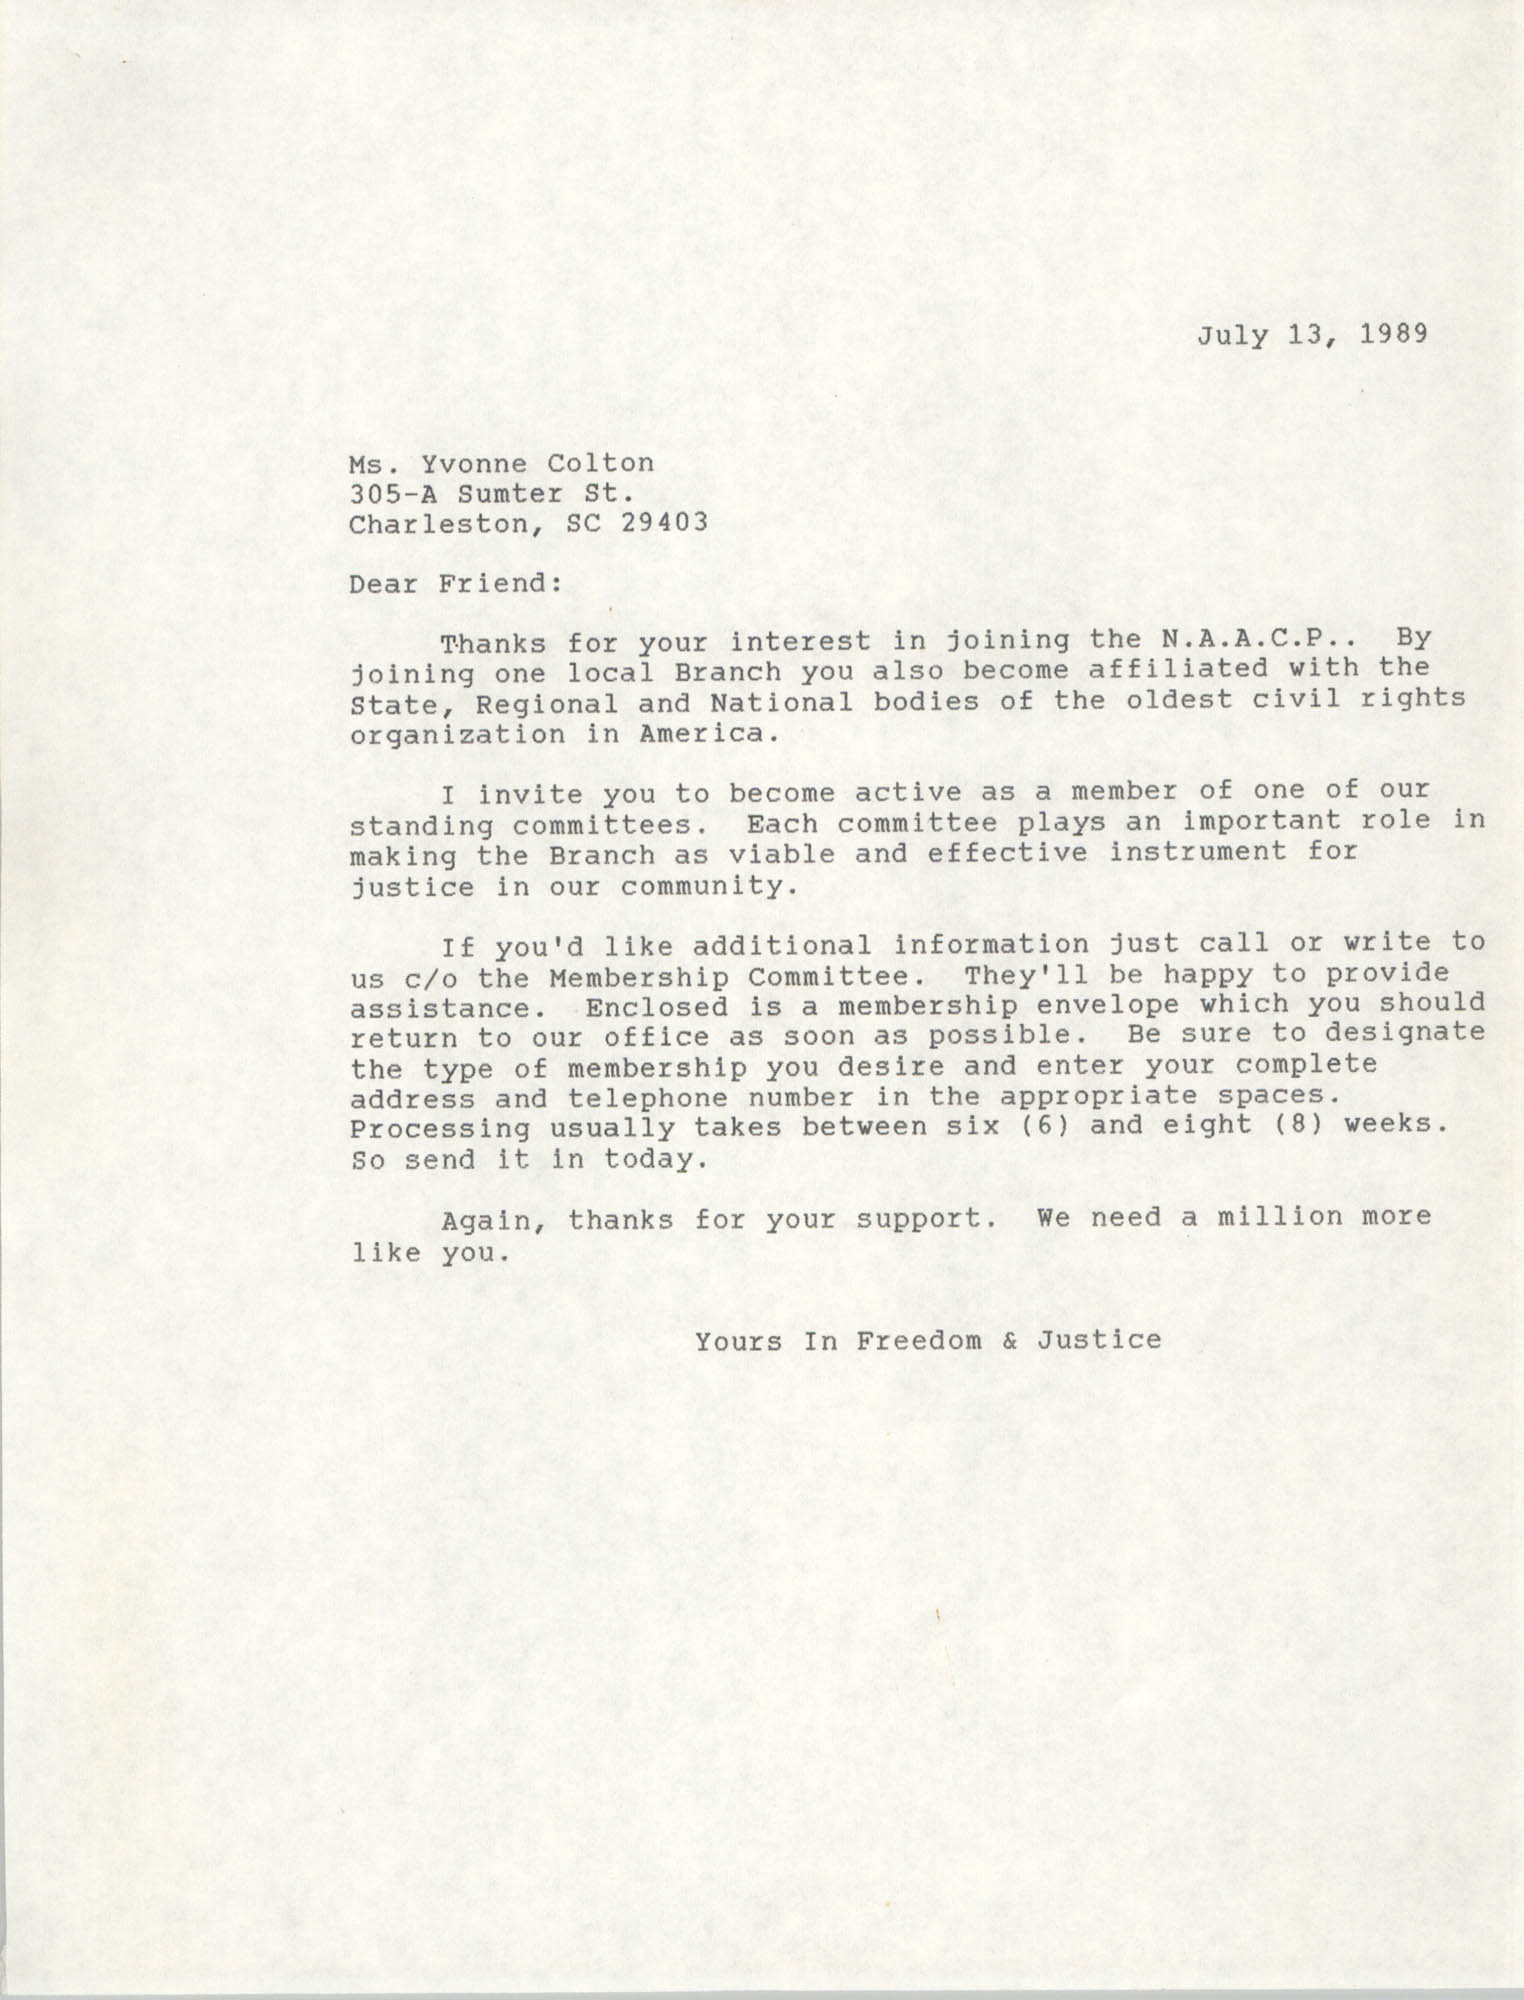 Letter to Yvonne Colton, July 13, 1989